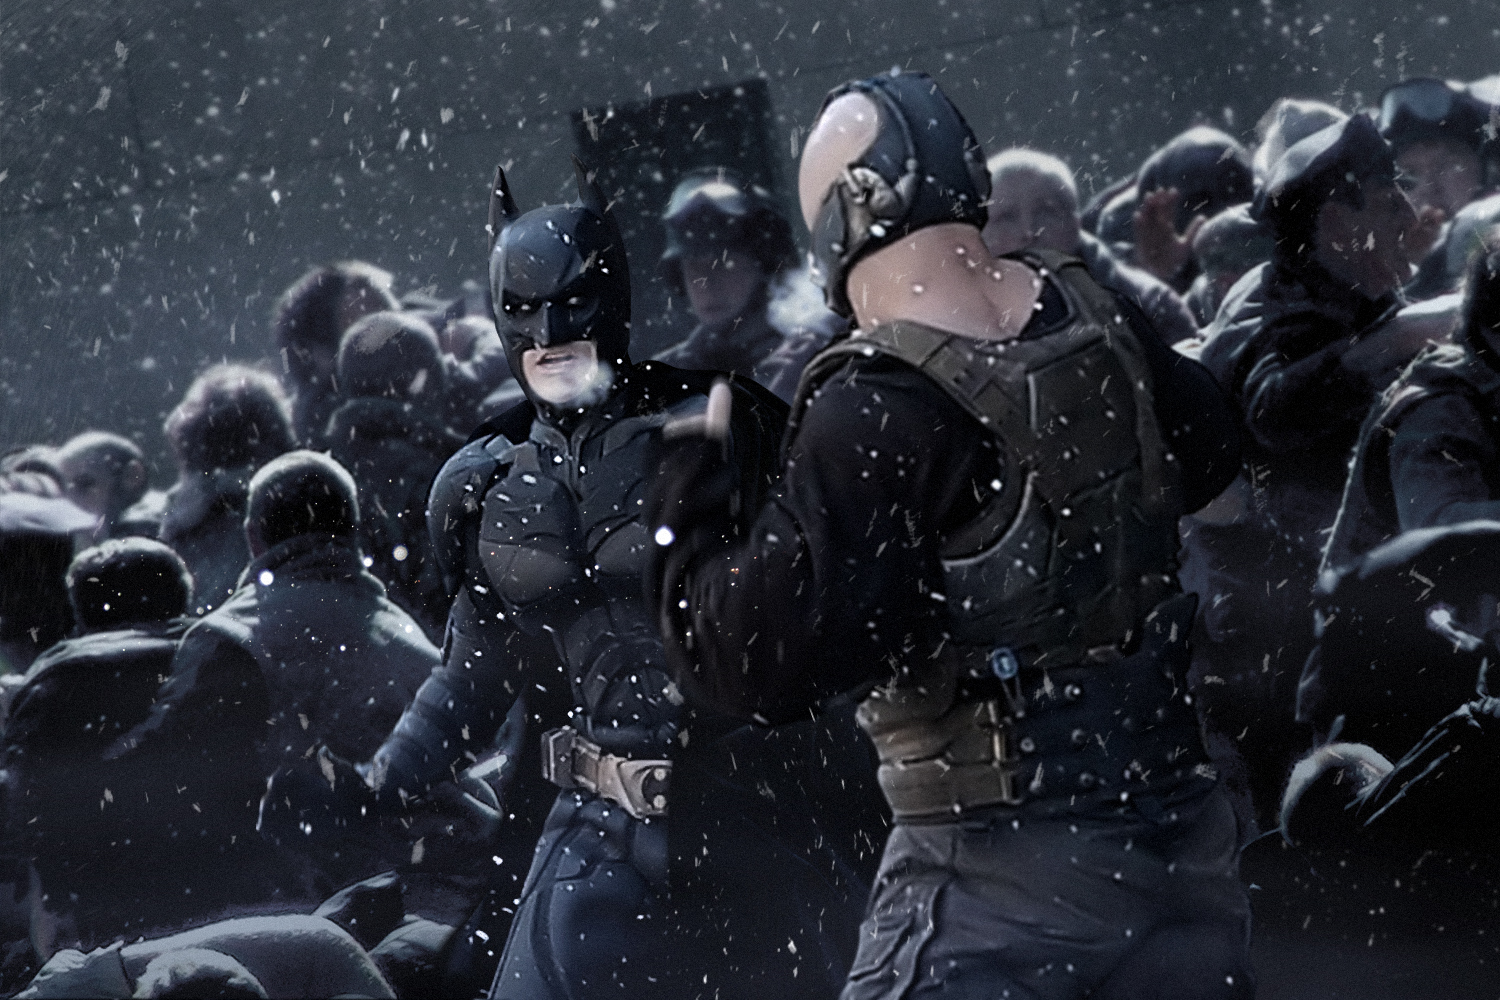 dark knight oscars The Ten Biggest Surprises of the Oscar Nominations